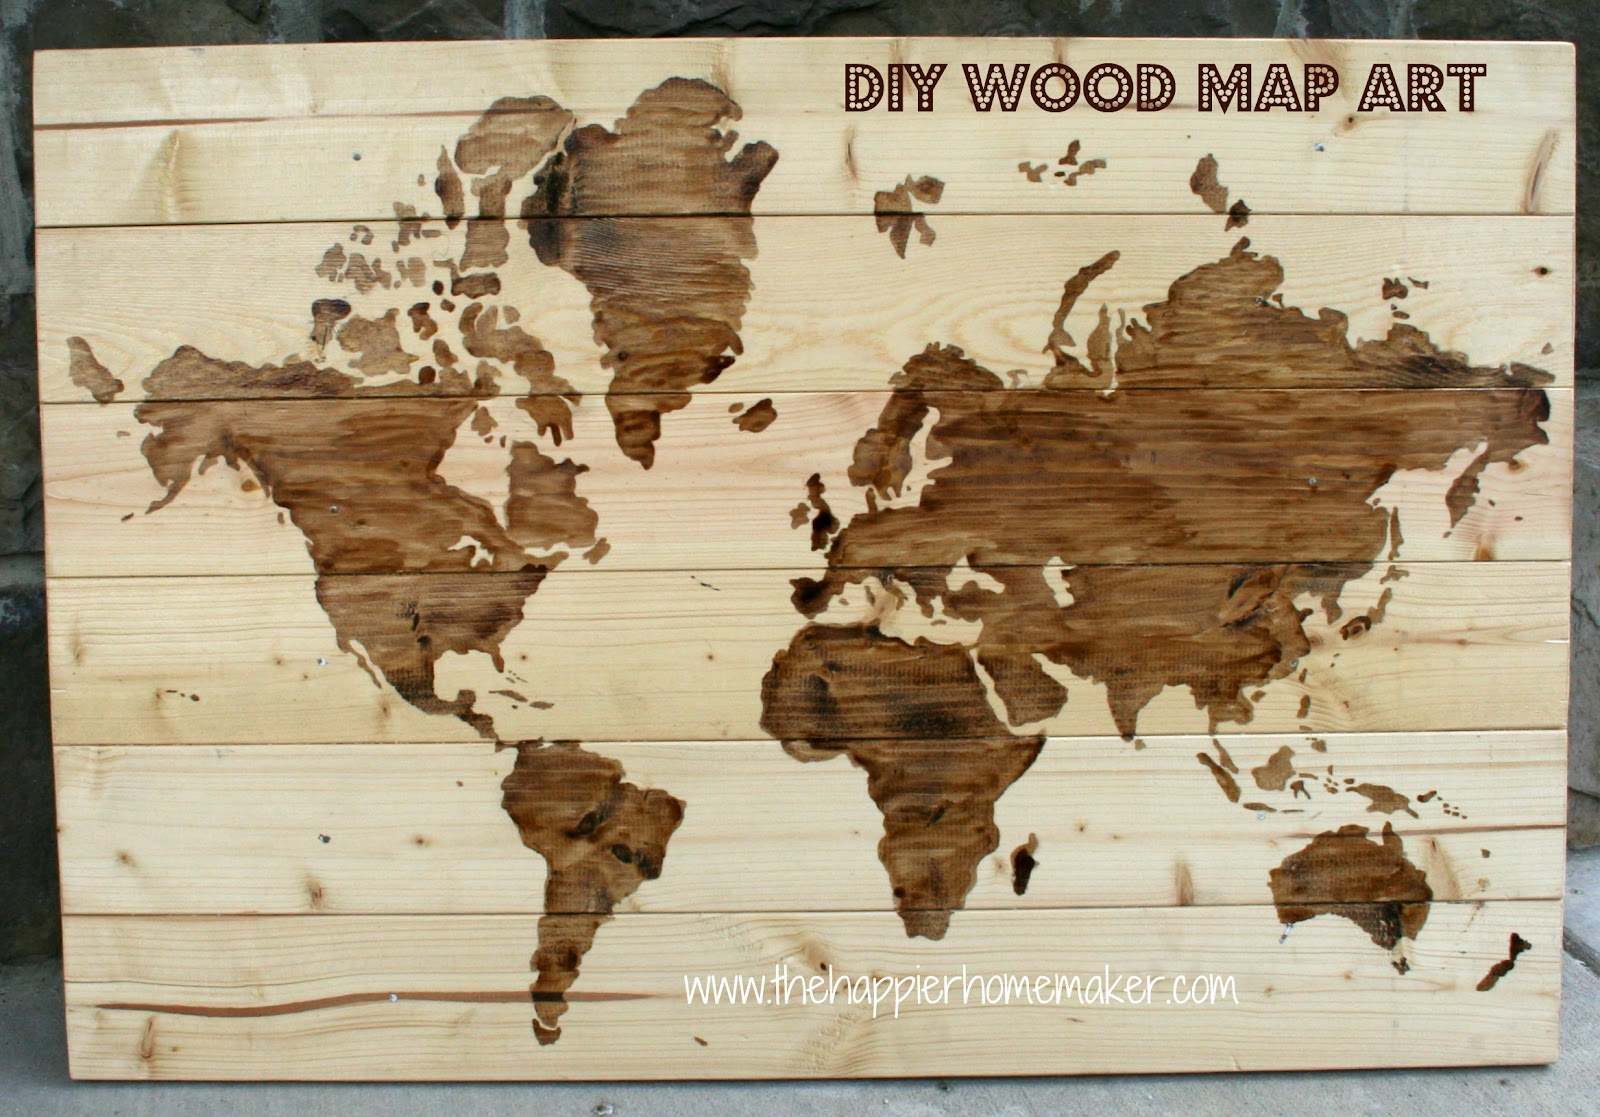 Diy wooden world map art the happier homemaker gumiabroncs Gallery